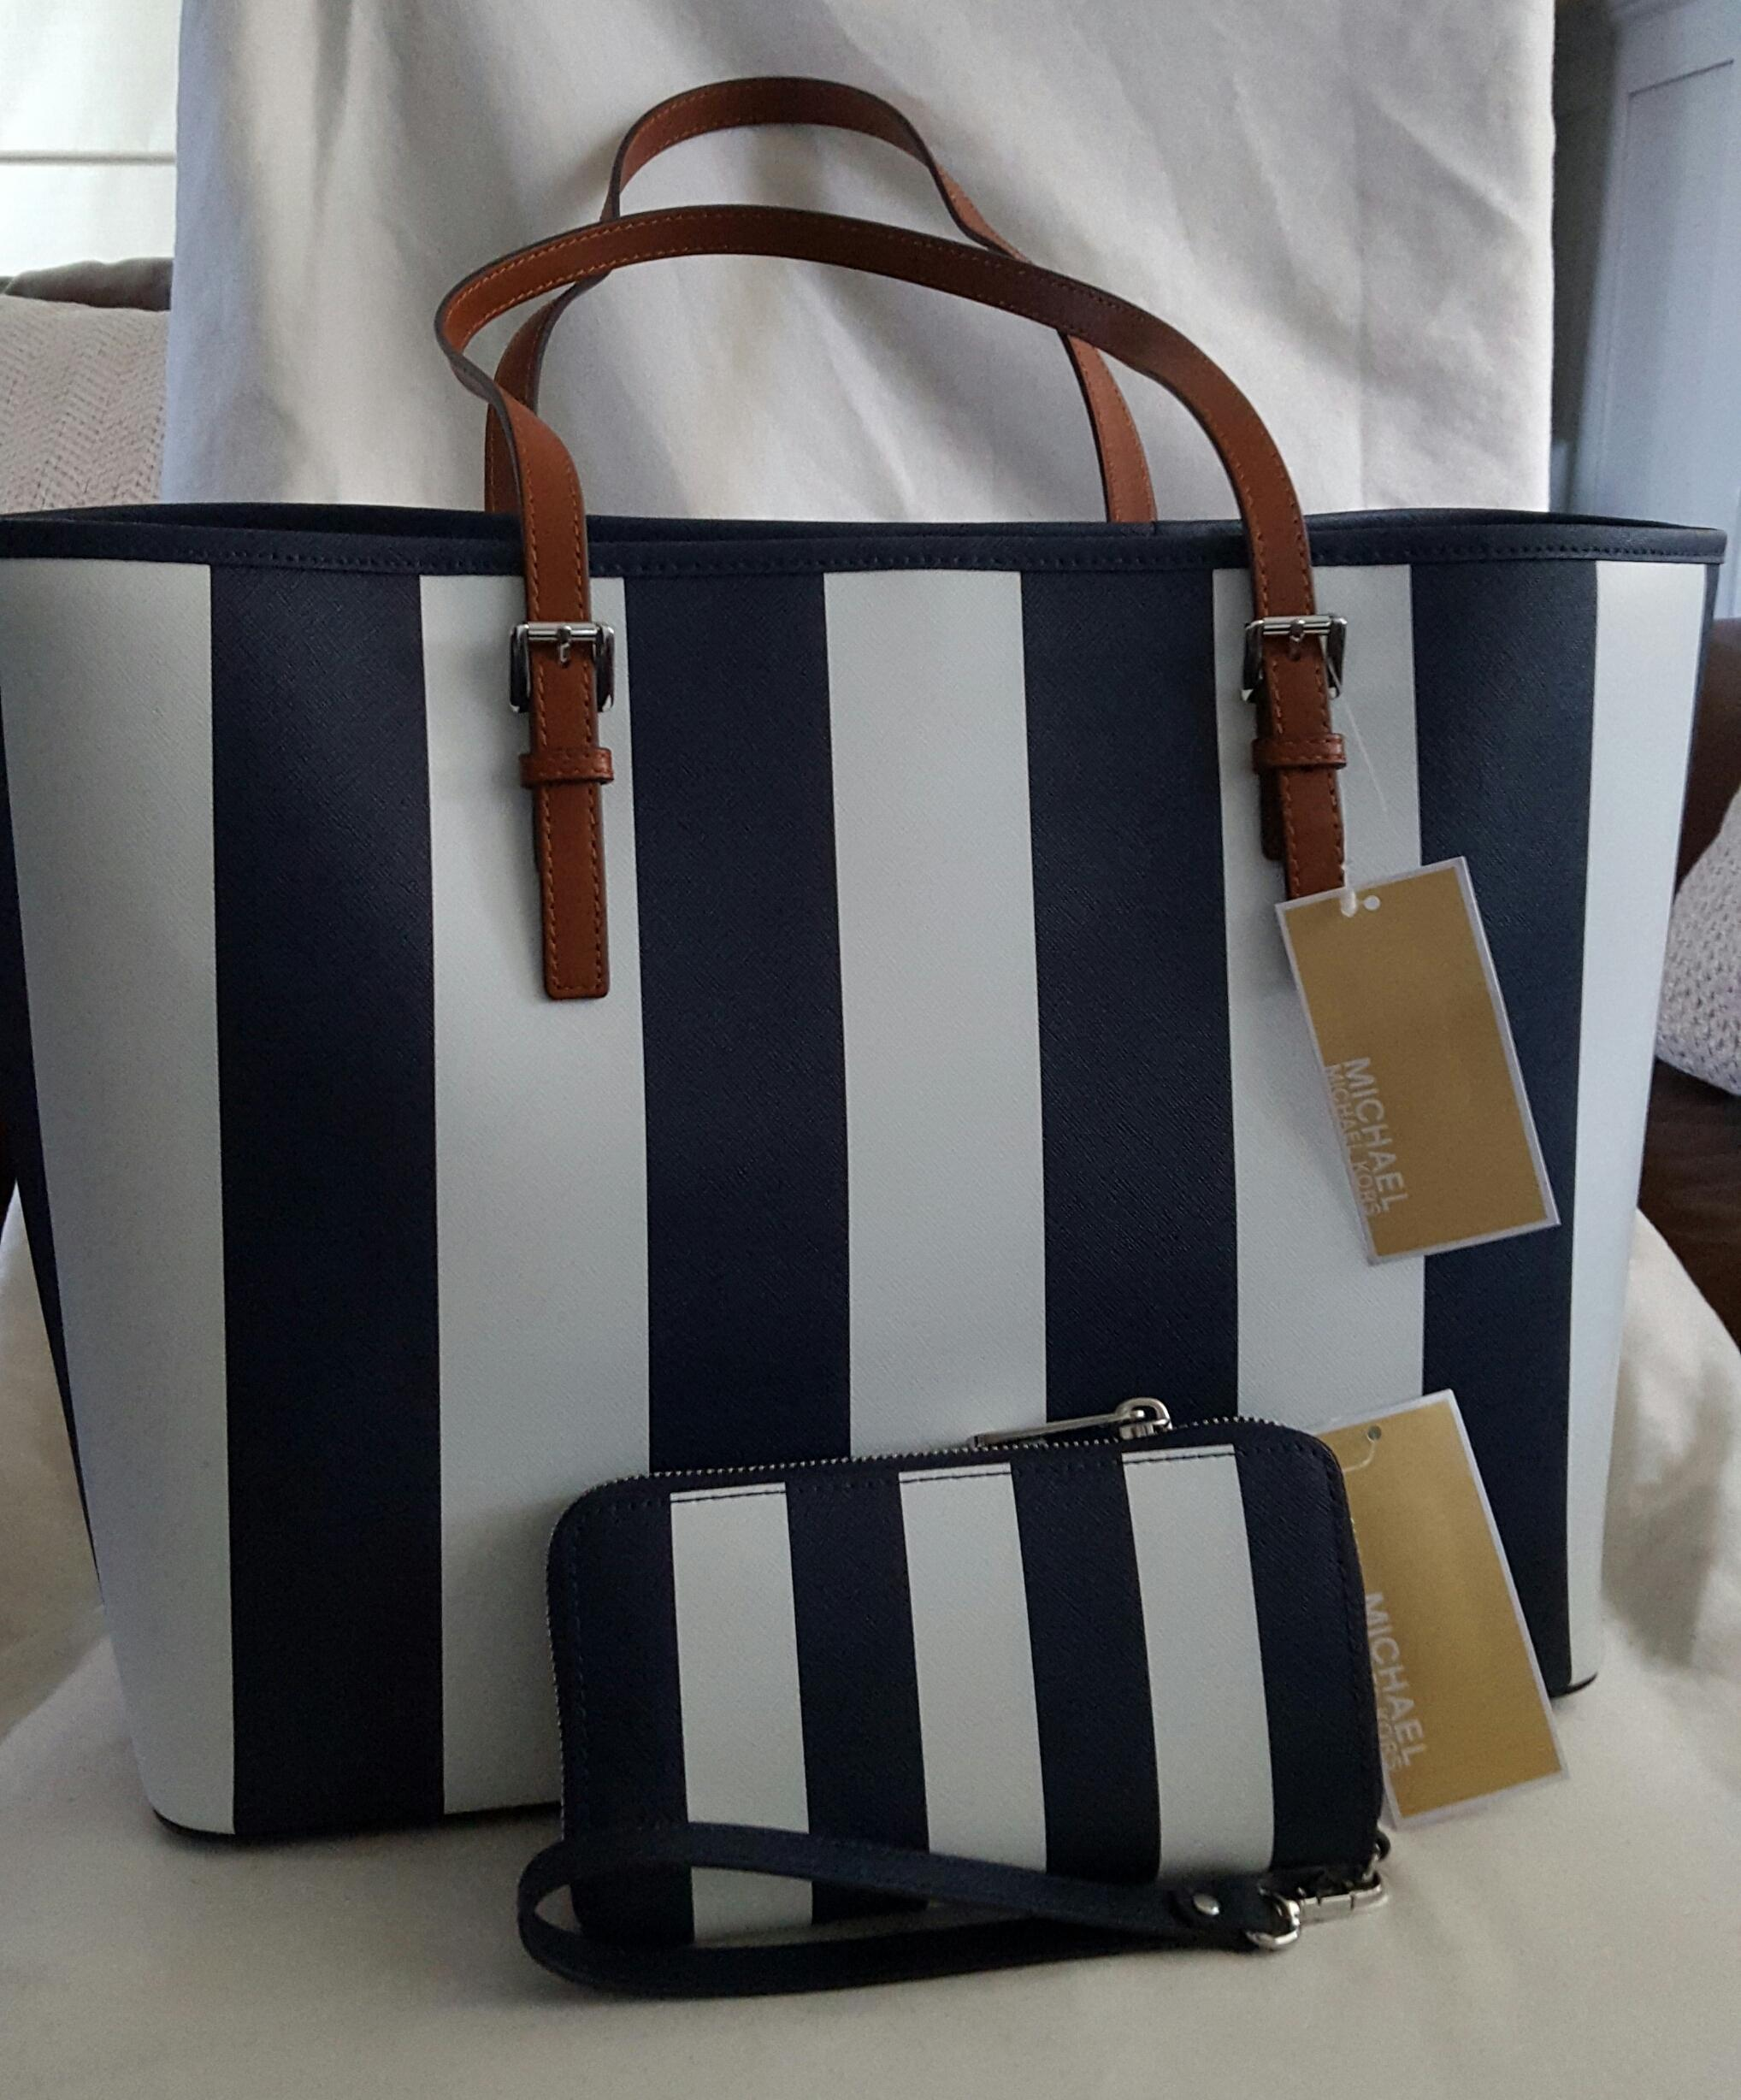 Michael Kors Jet Set Travel And Wallet Navy Blue/white Tote Bag on ...